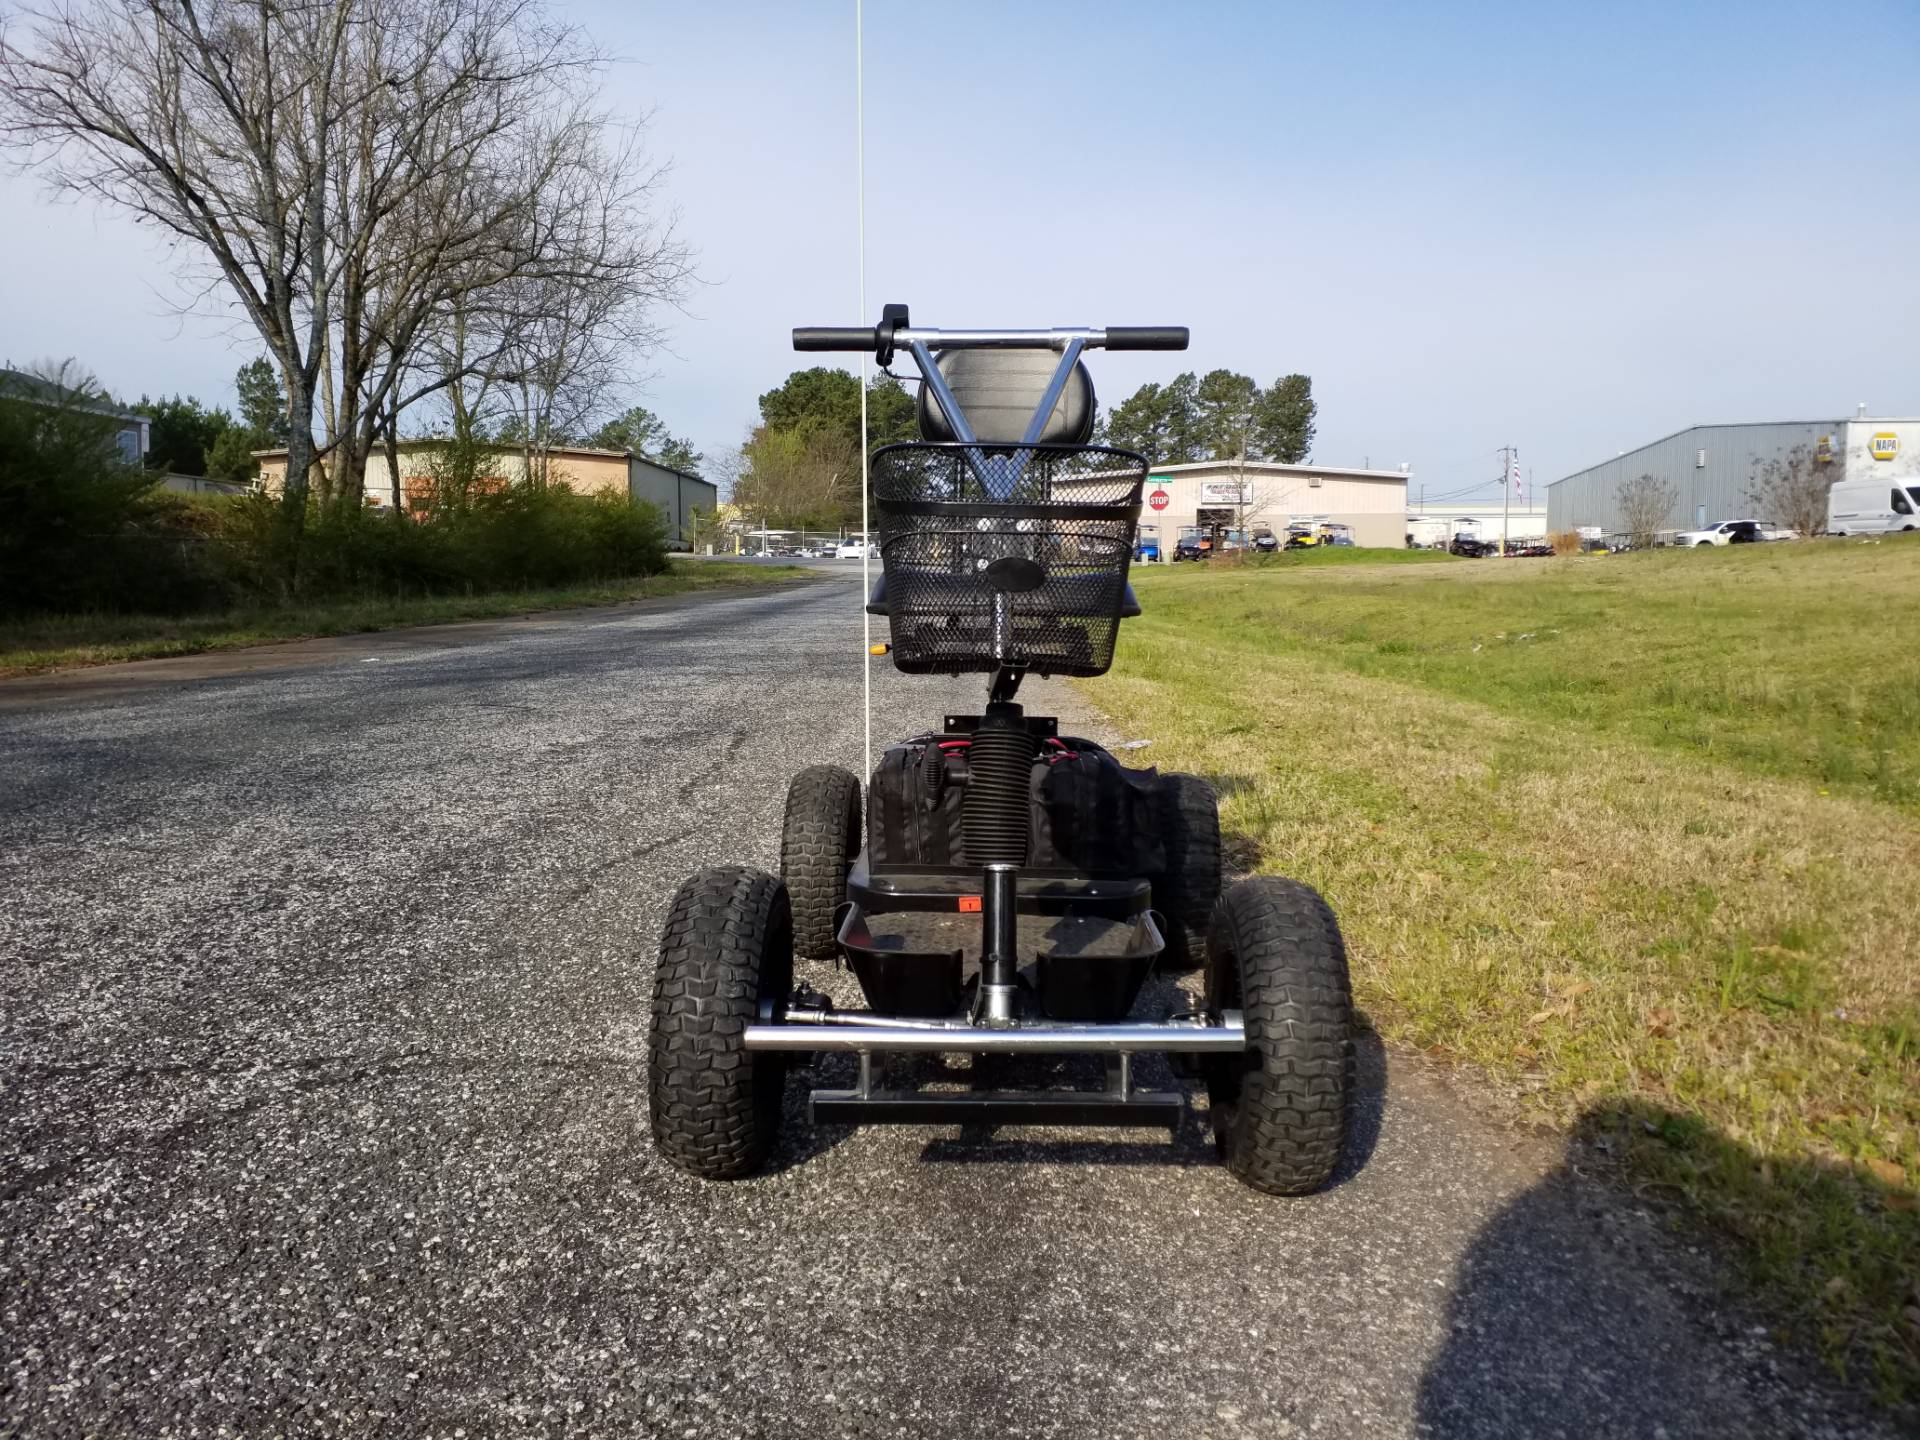 2018 BAMA SCOOTER GROUND HOG 350 in Covington, Georgia - Photo 4